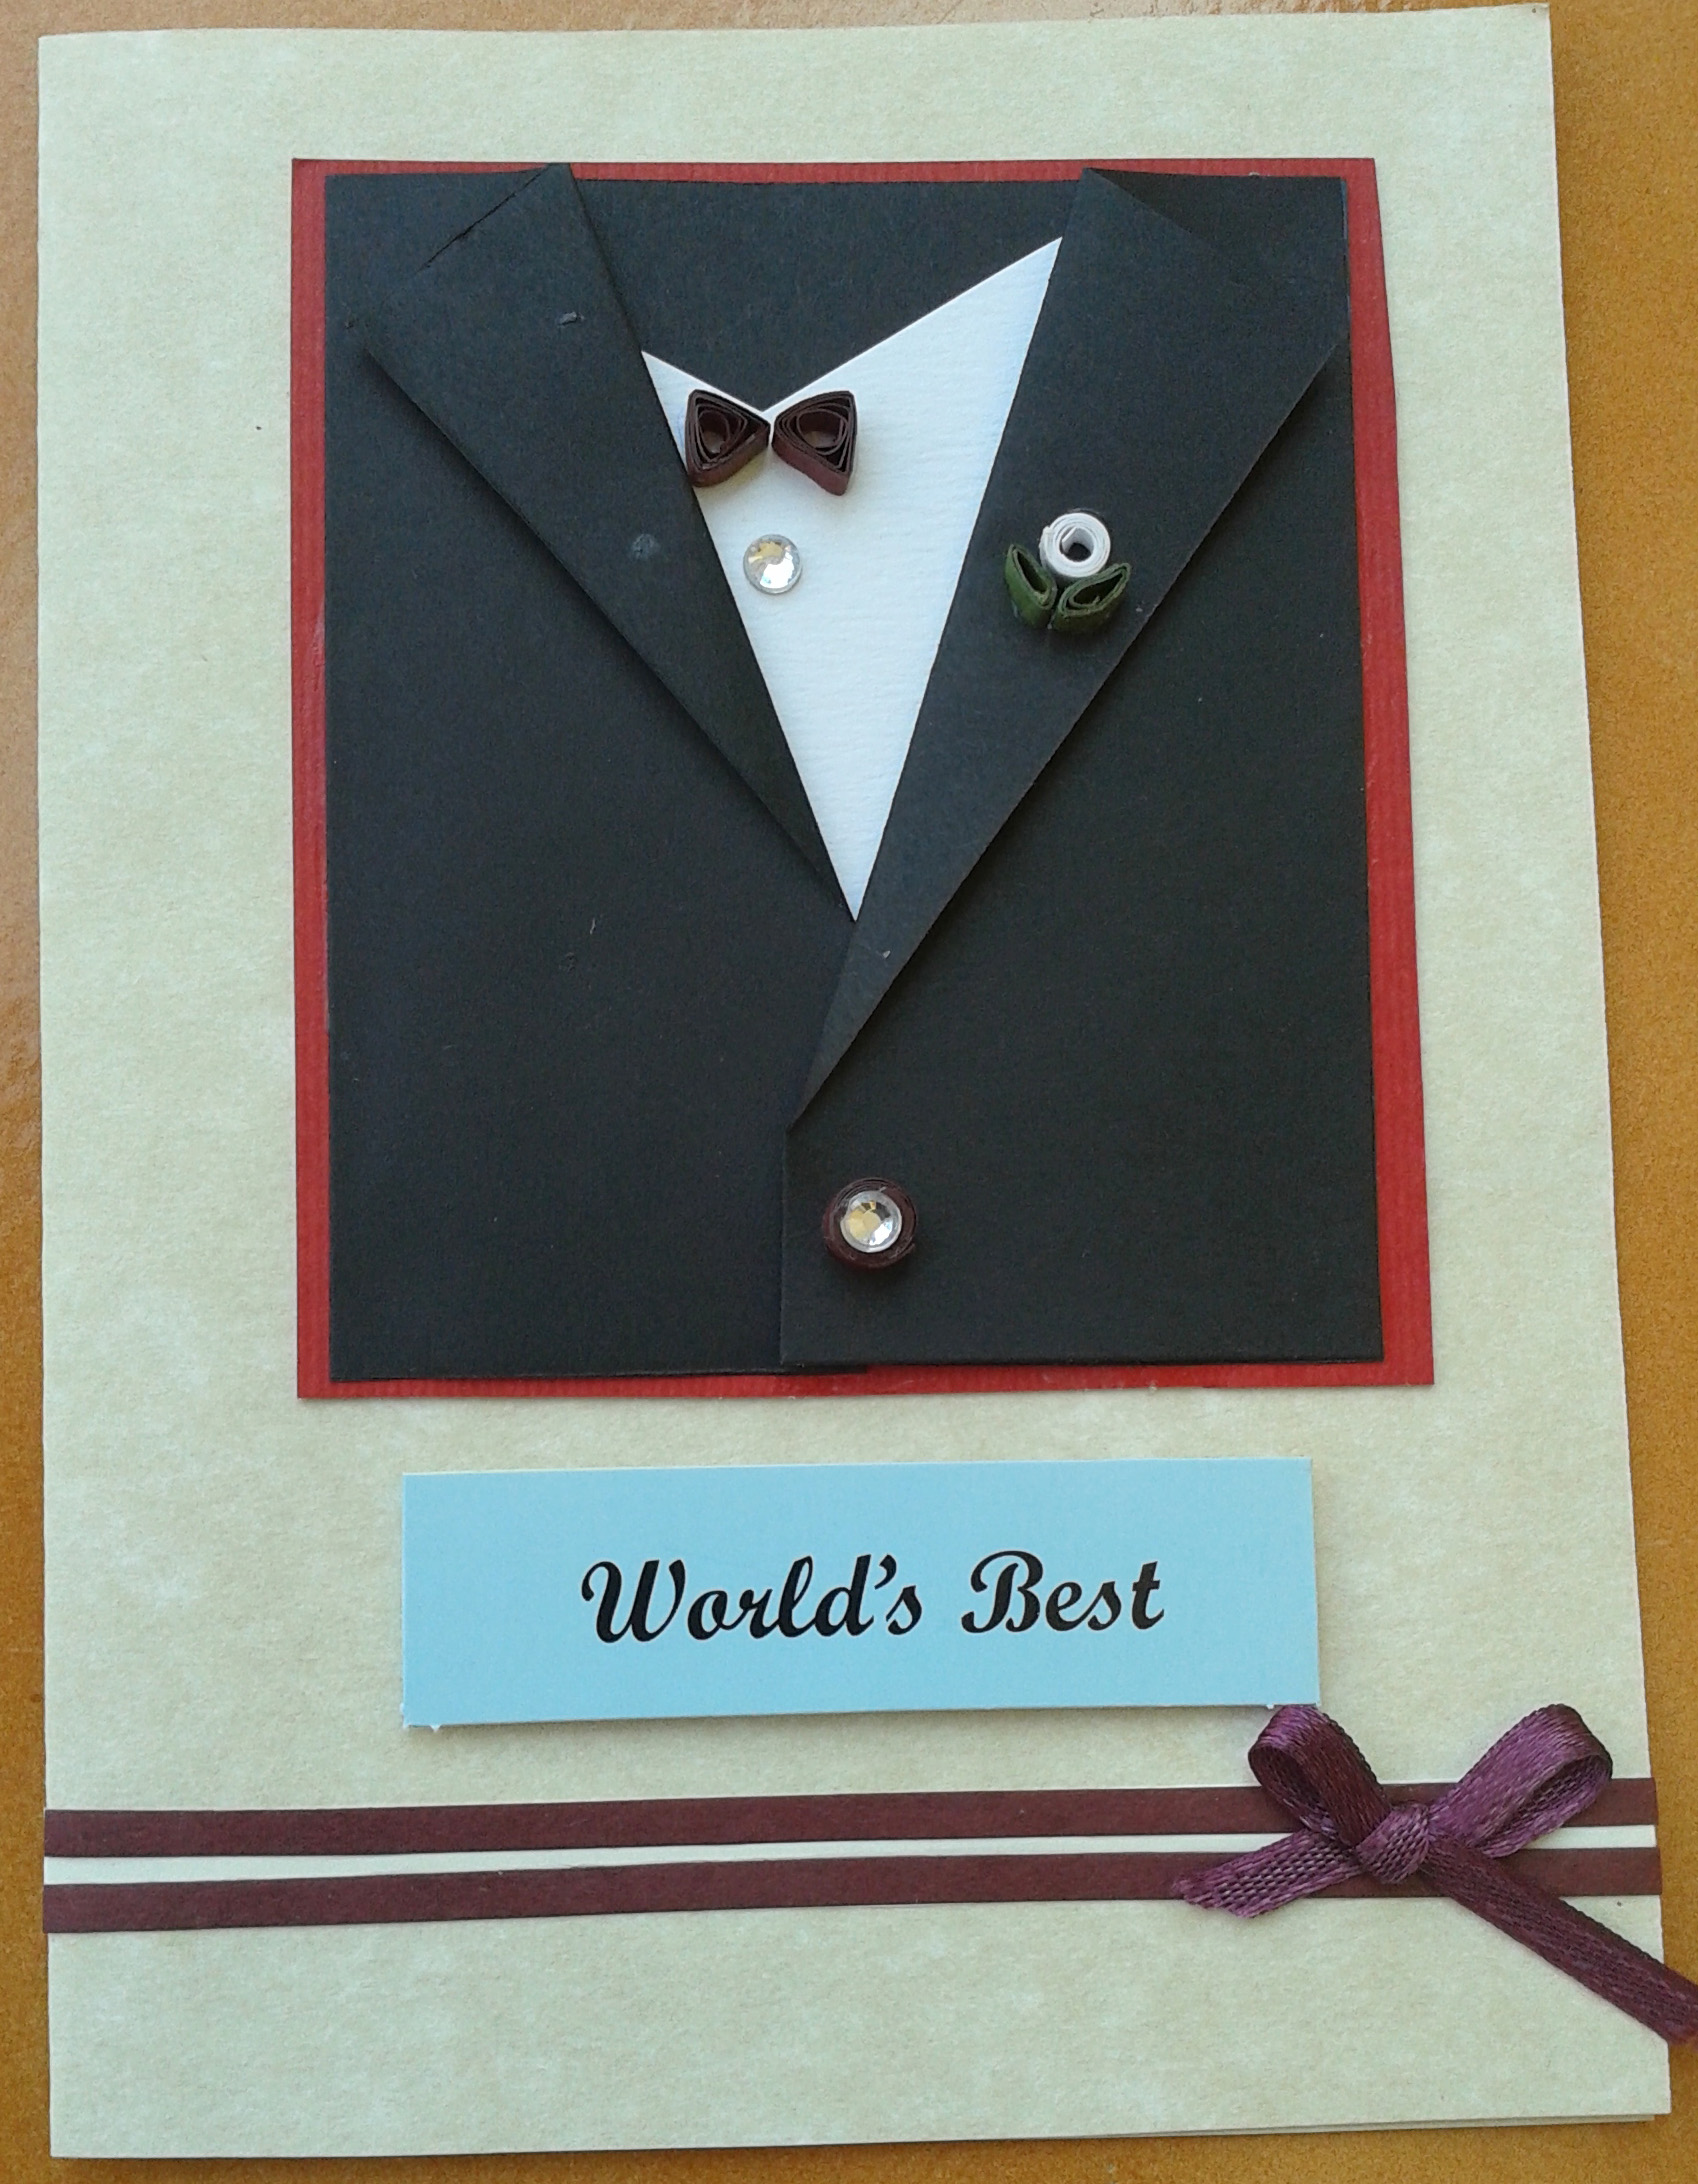 Buy Worlds Best Black suit card for him ShipMyCardCom – Handmade Birthday Card for Lover